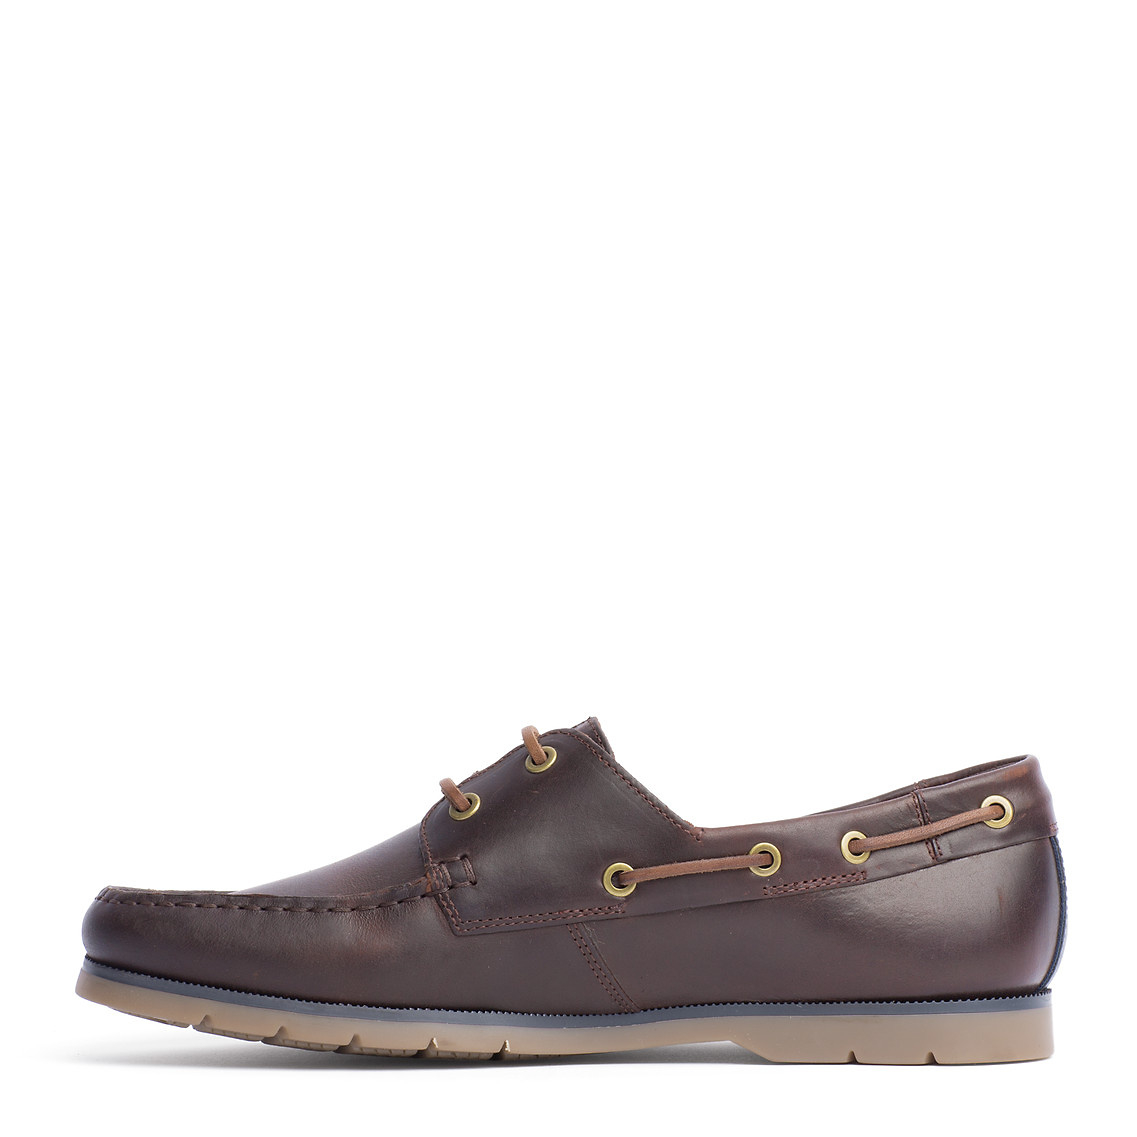 Tommy Hilfiger Brown Boat Shoes